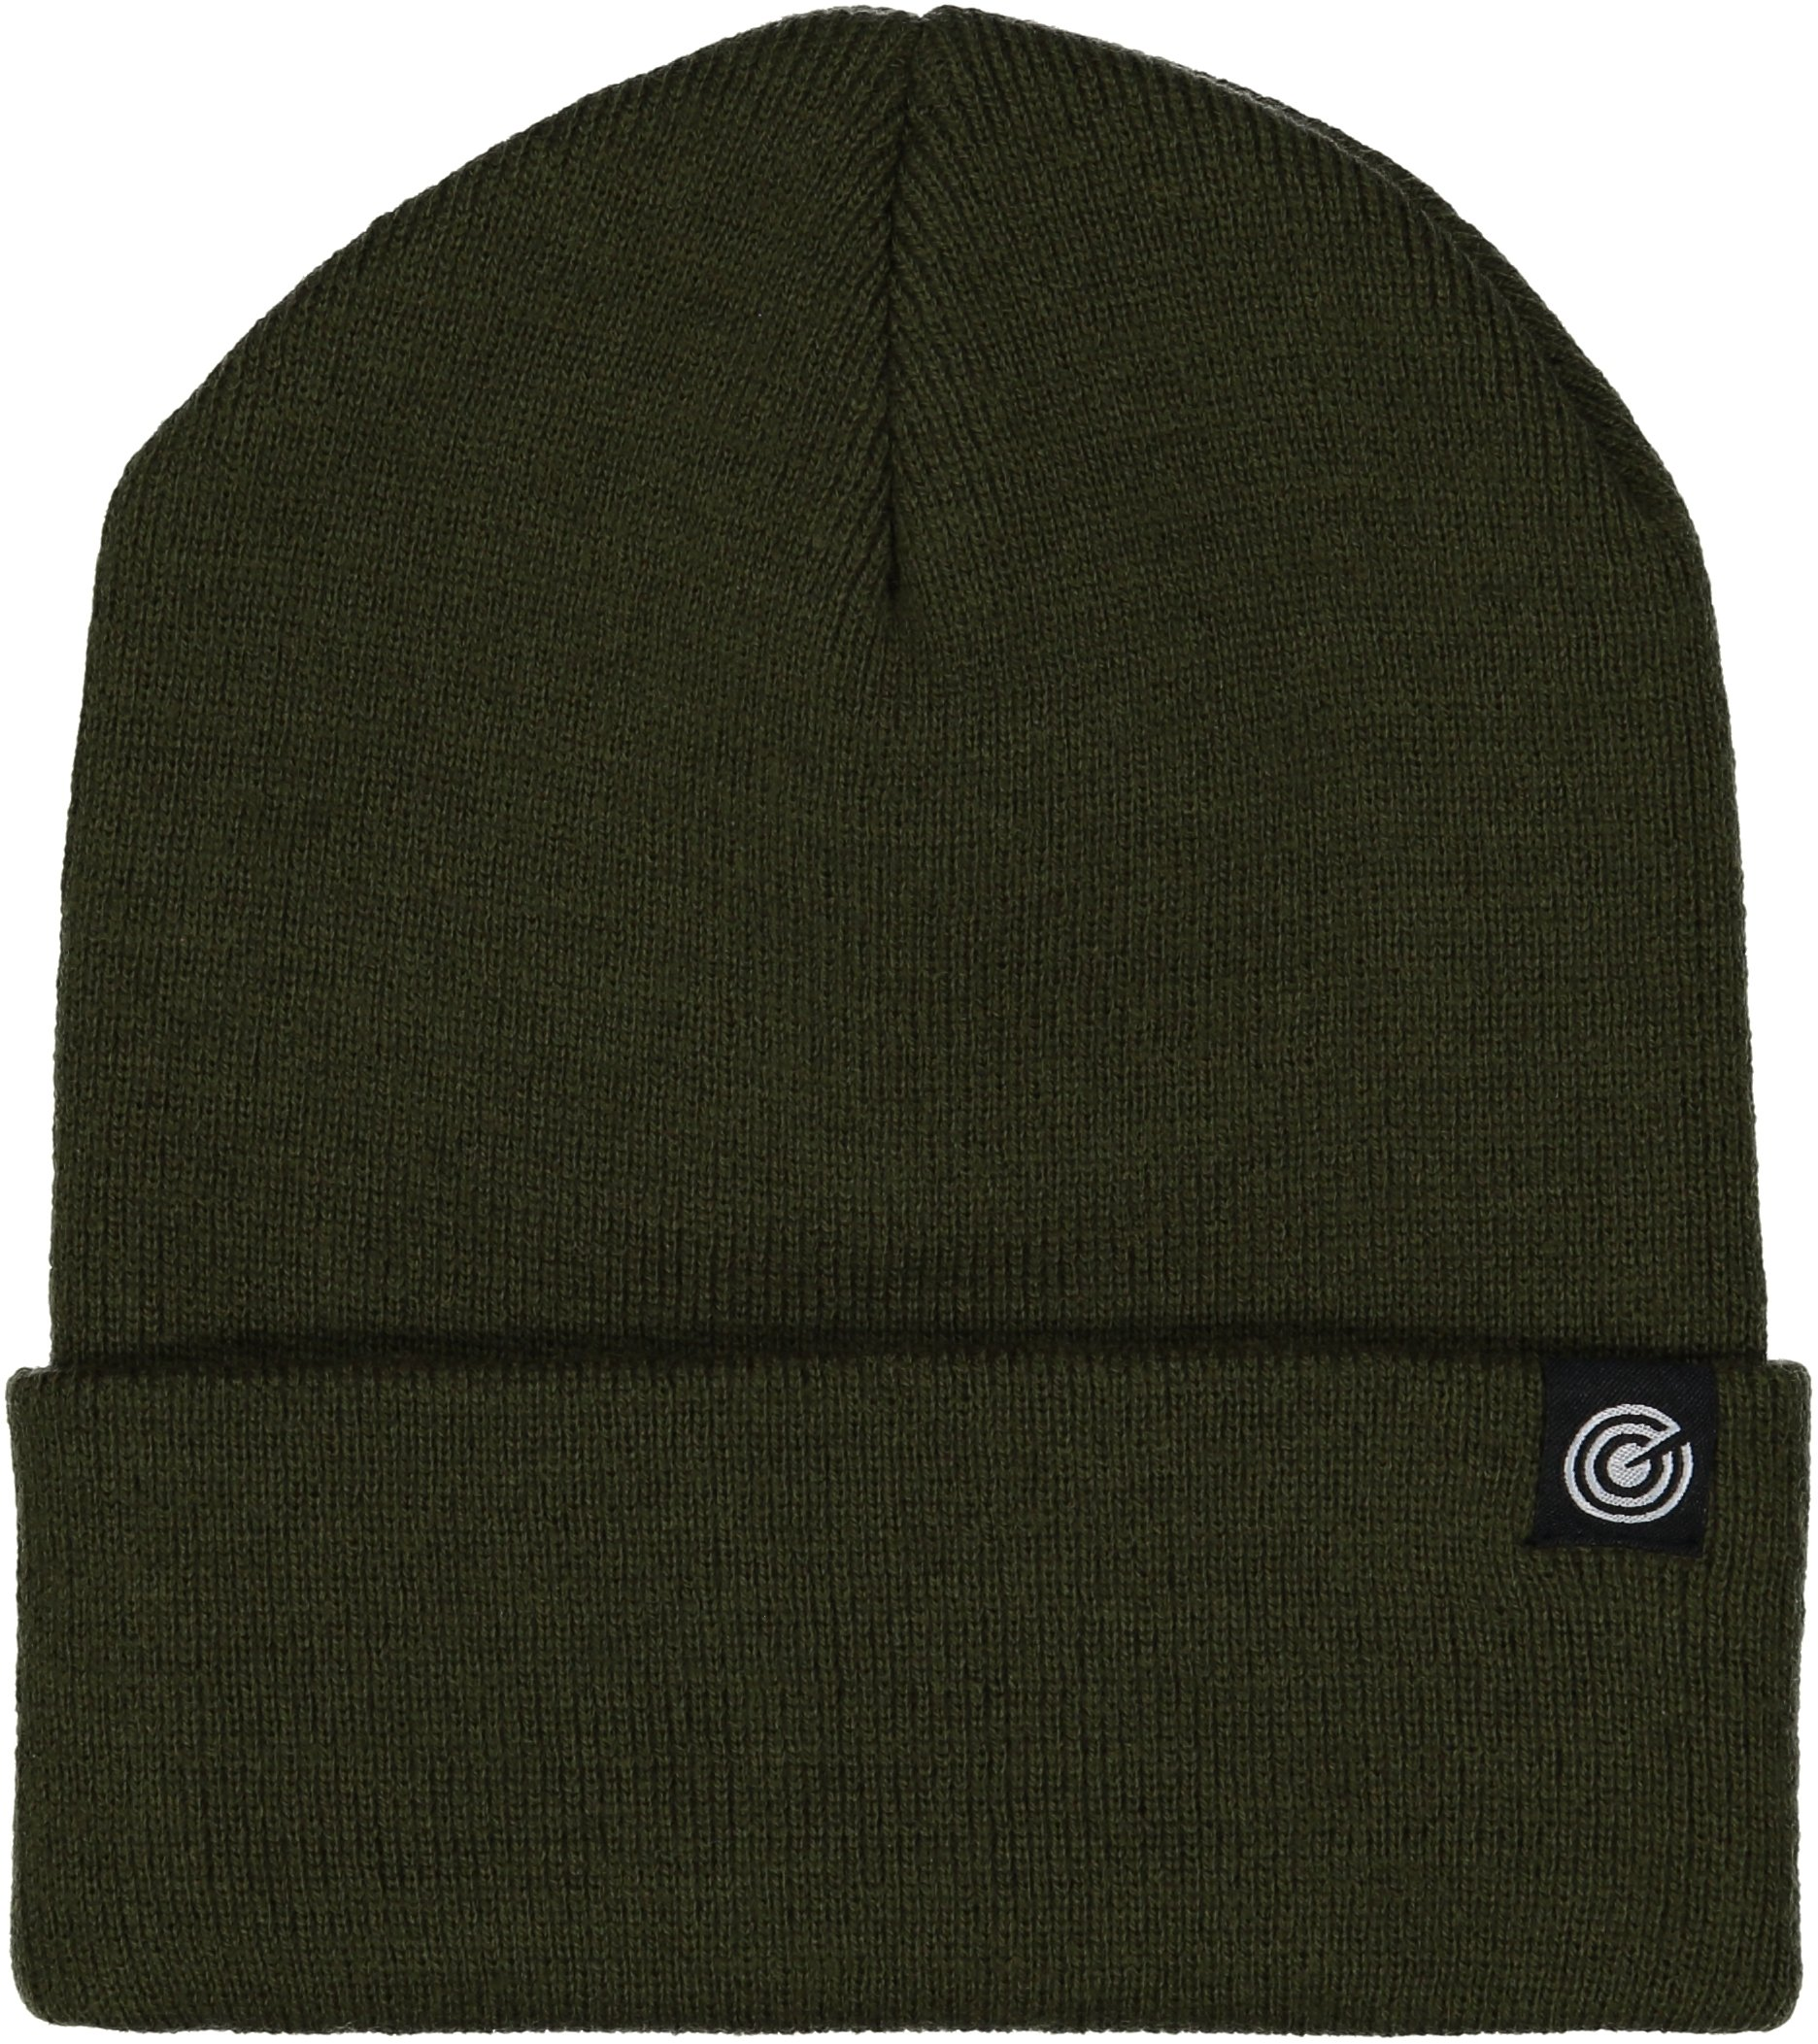 Cuffed Beanie - Warm Daily Beanie Hat with Foldover Cuff - Stylish Winter Colors,Forest Green,One Size